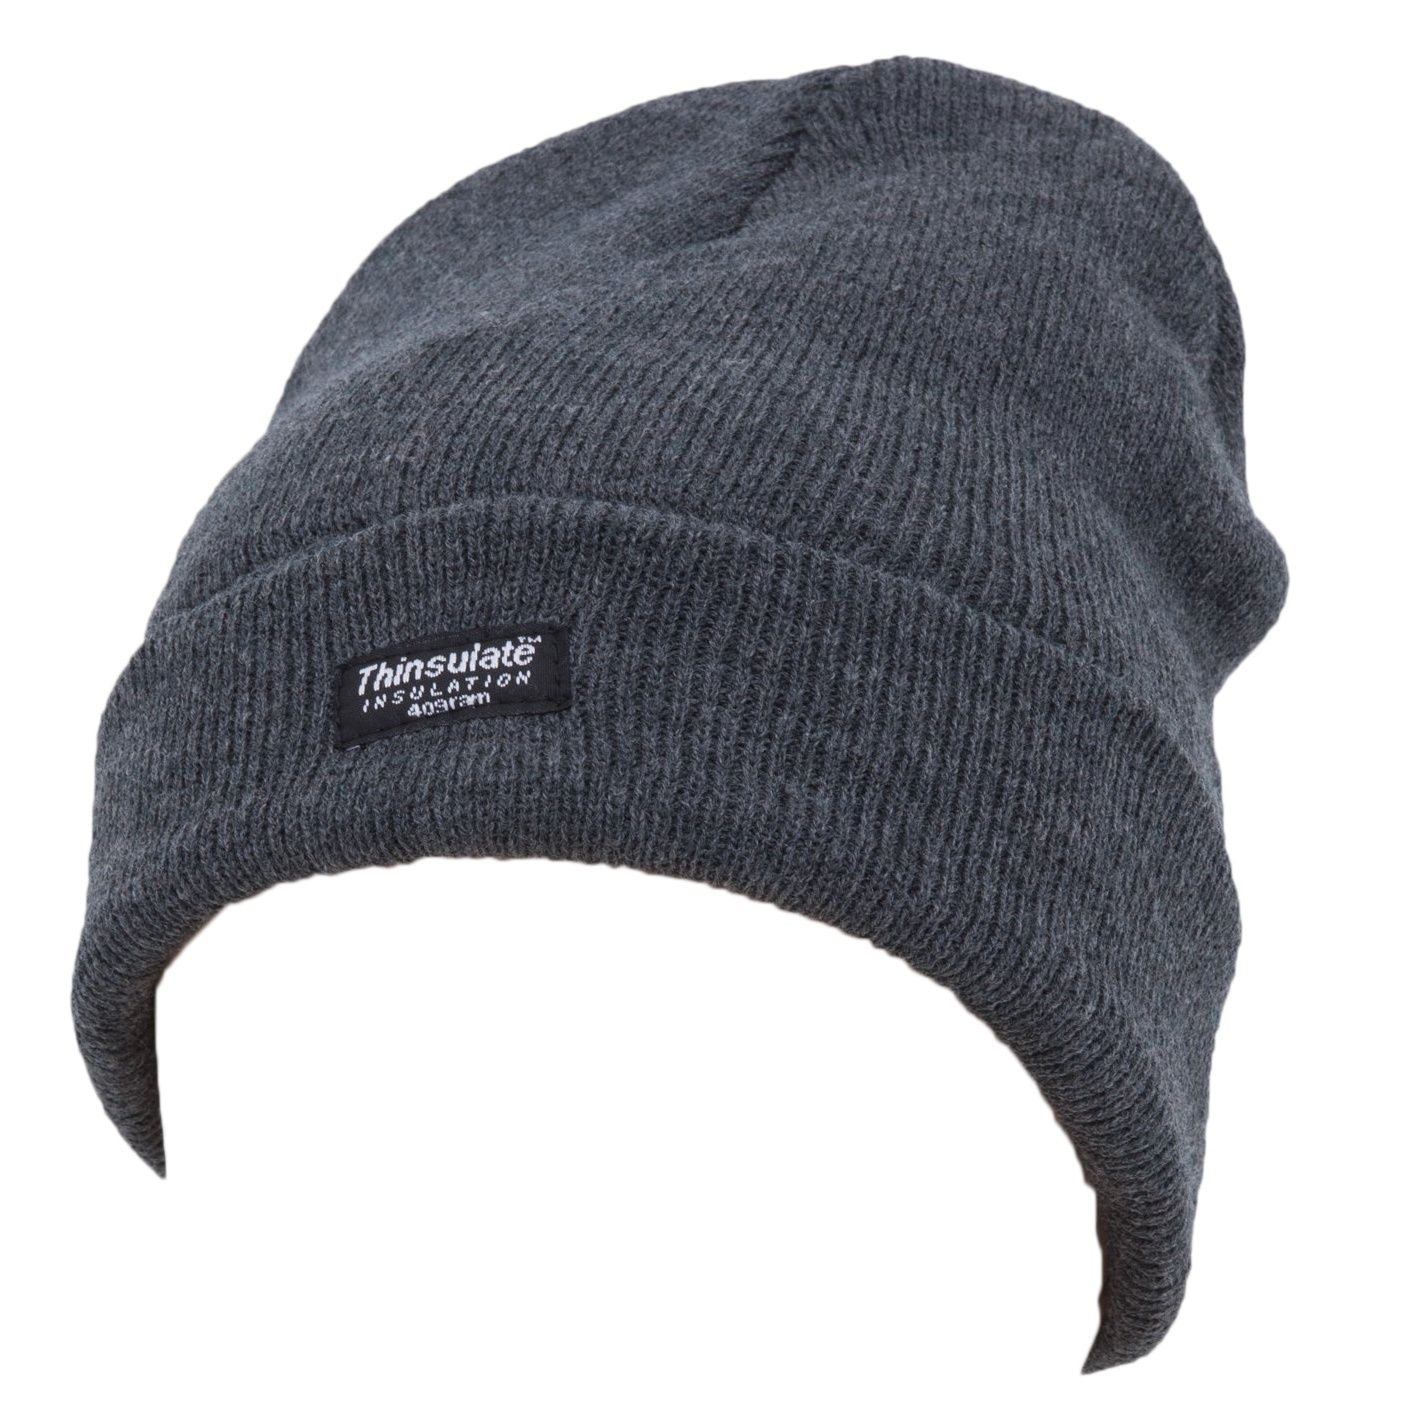 e84eed6bdad Great quality thinsulate hat. Fibre  outer 100% Acrylic. Interlining c40  premium thinsulate 65% Polypropylene